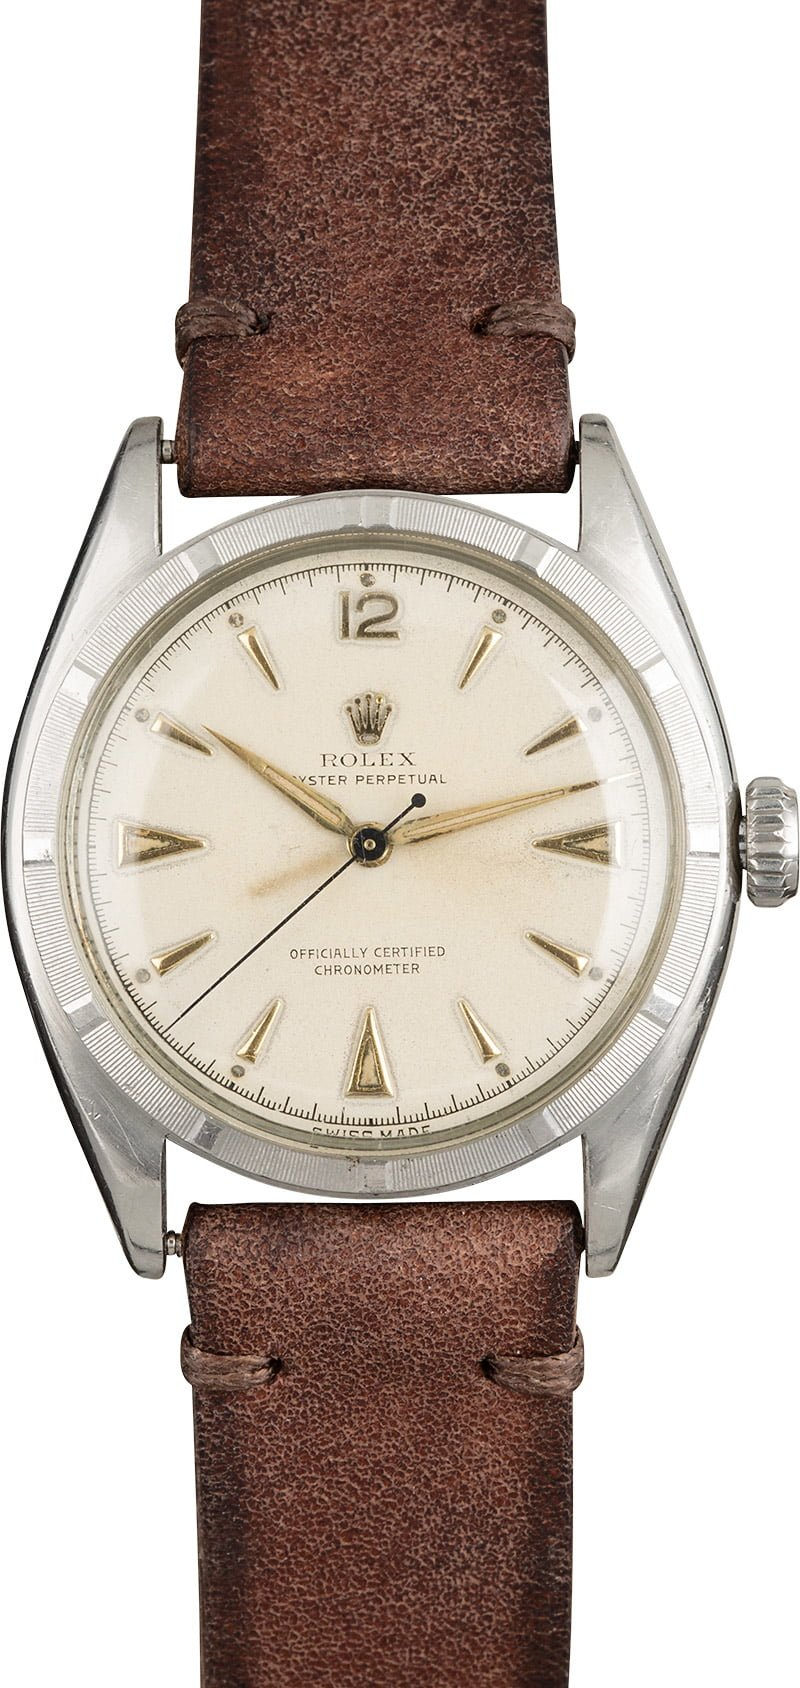 Vintage rolex oyster perpetual white dial 6085 save up to 50 for Vintage rolex oyster